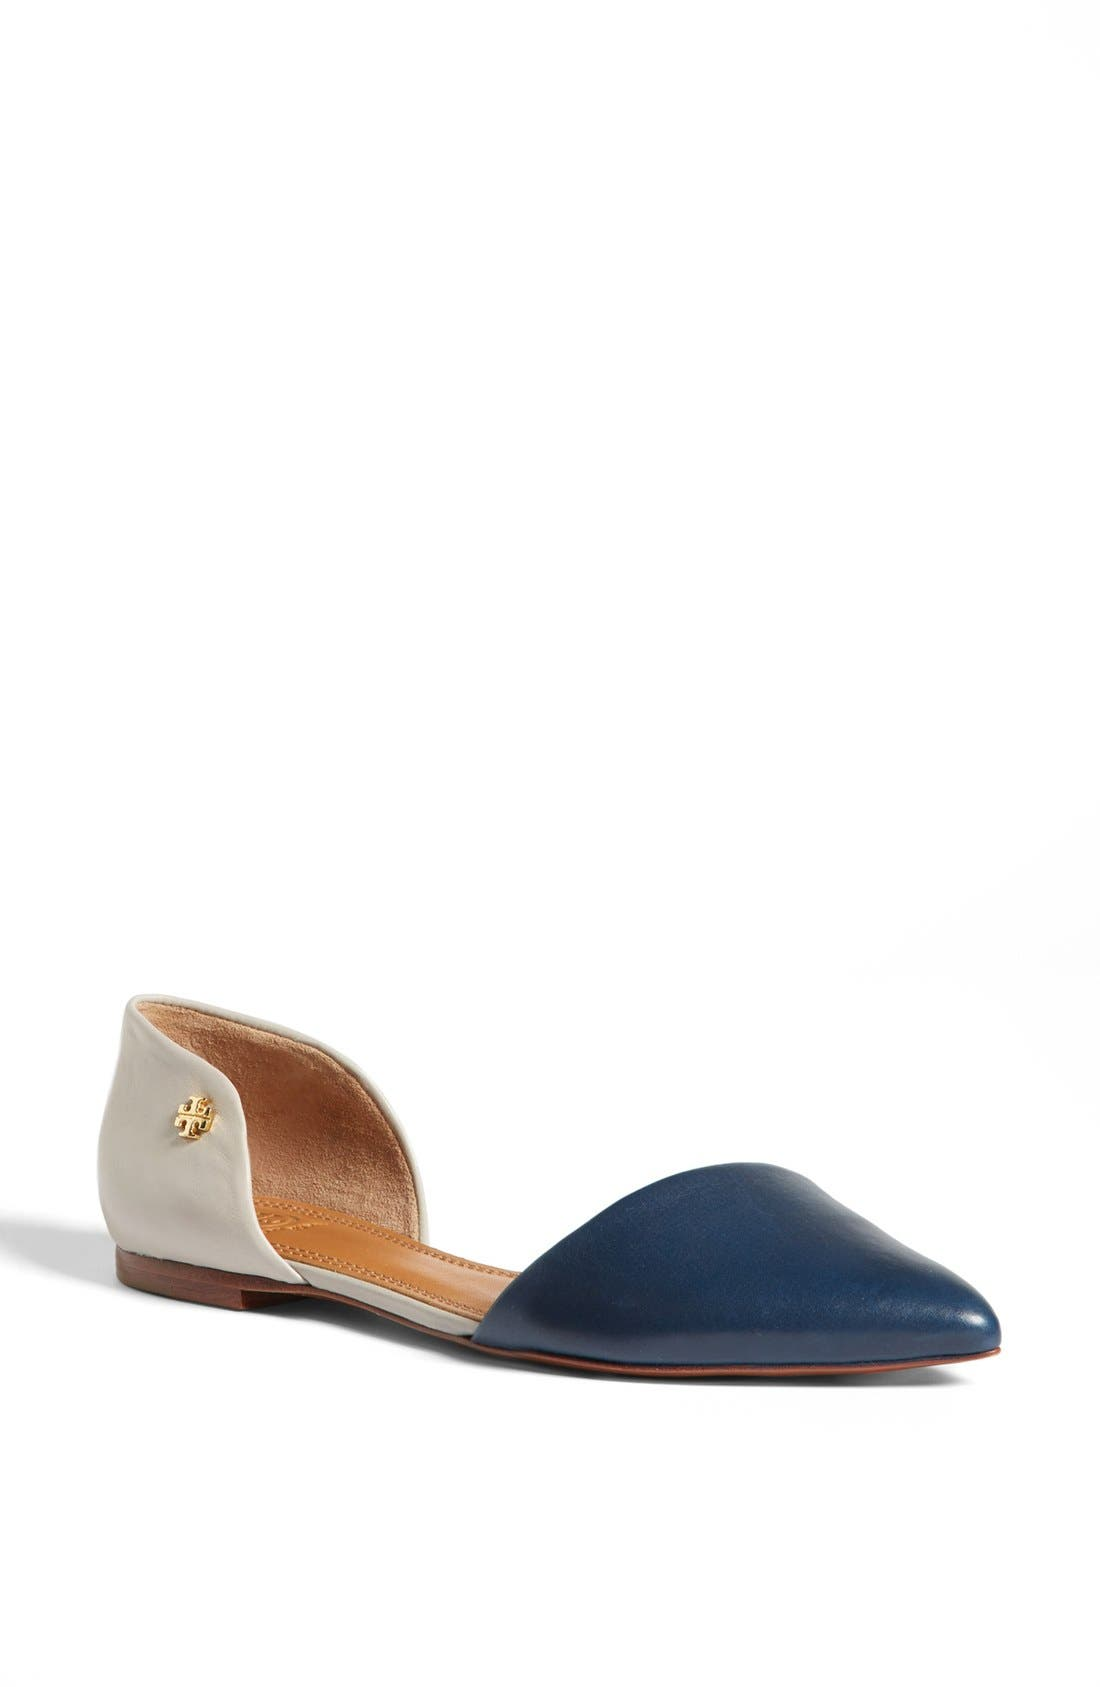 Alternate Image 1 Selected - Tory Burch Leather Flat